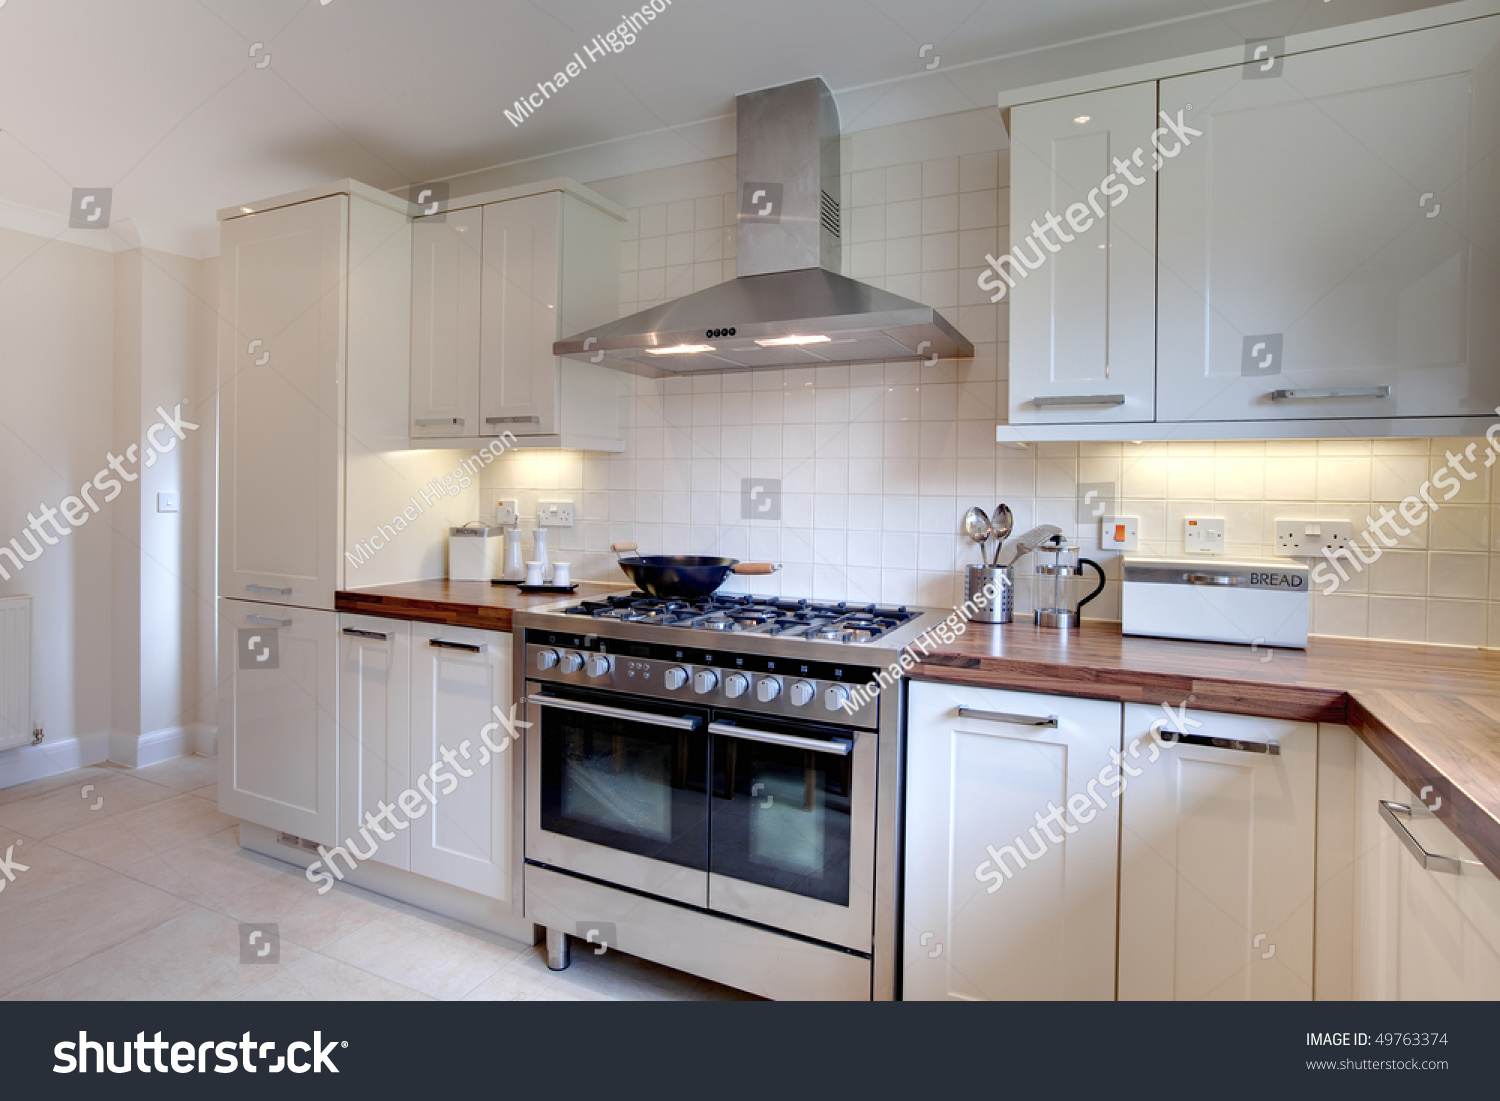 Contemprary cream colored modern kitchen range stock photo for Modern kitchen looks